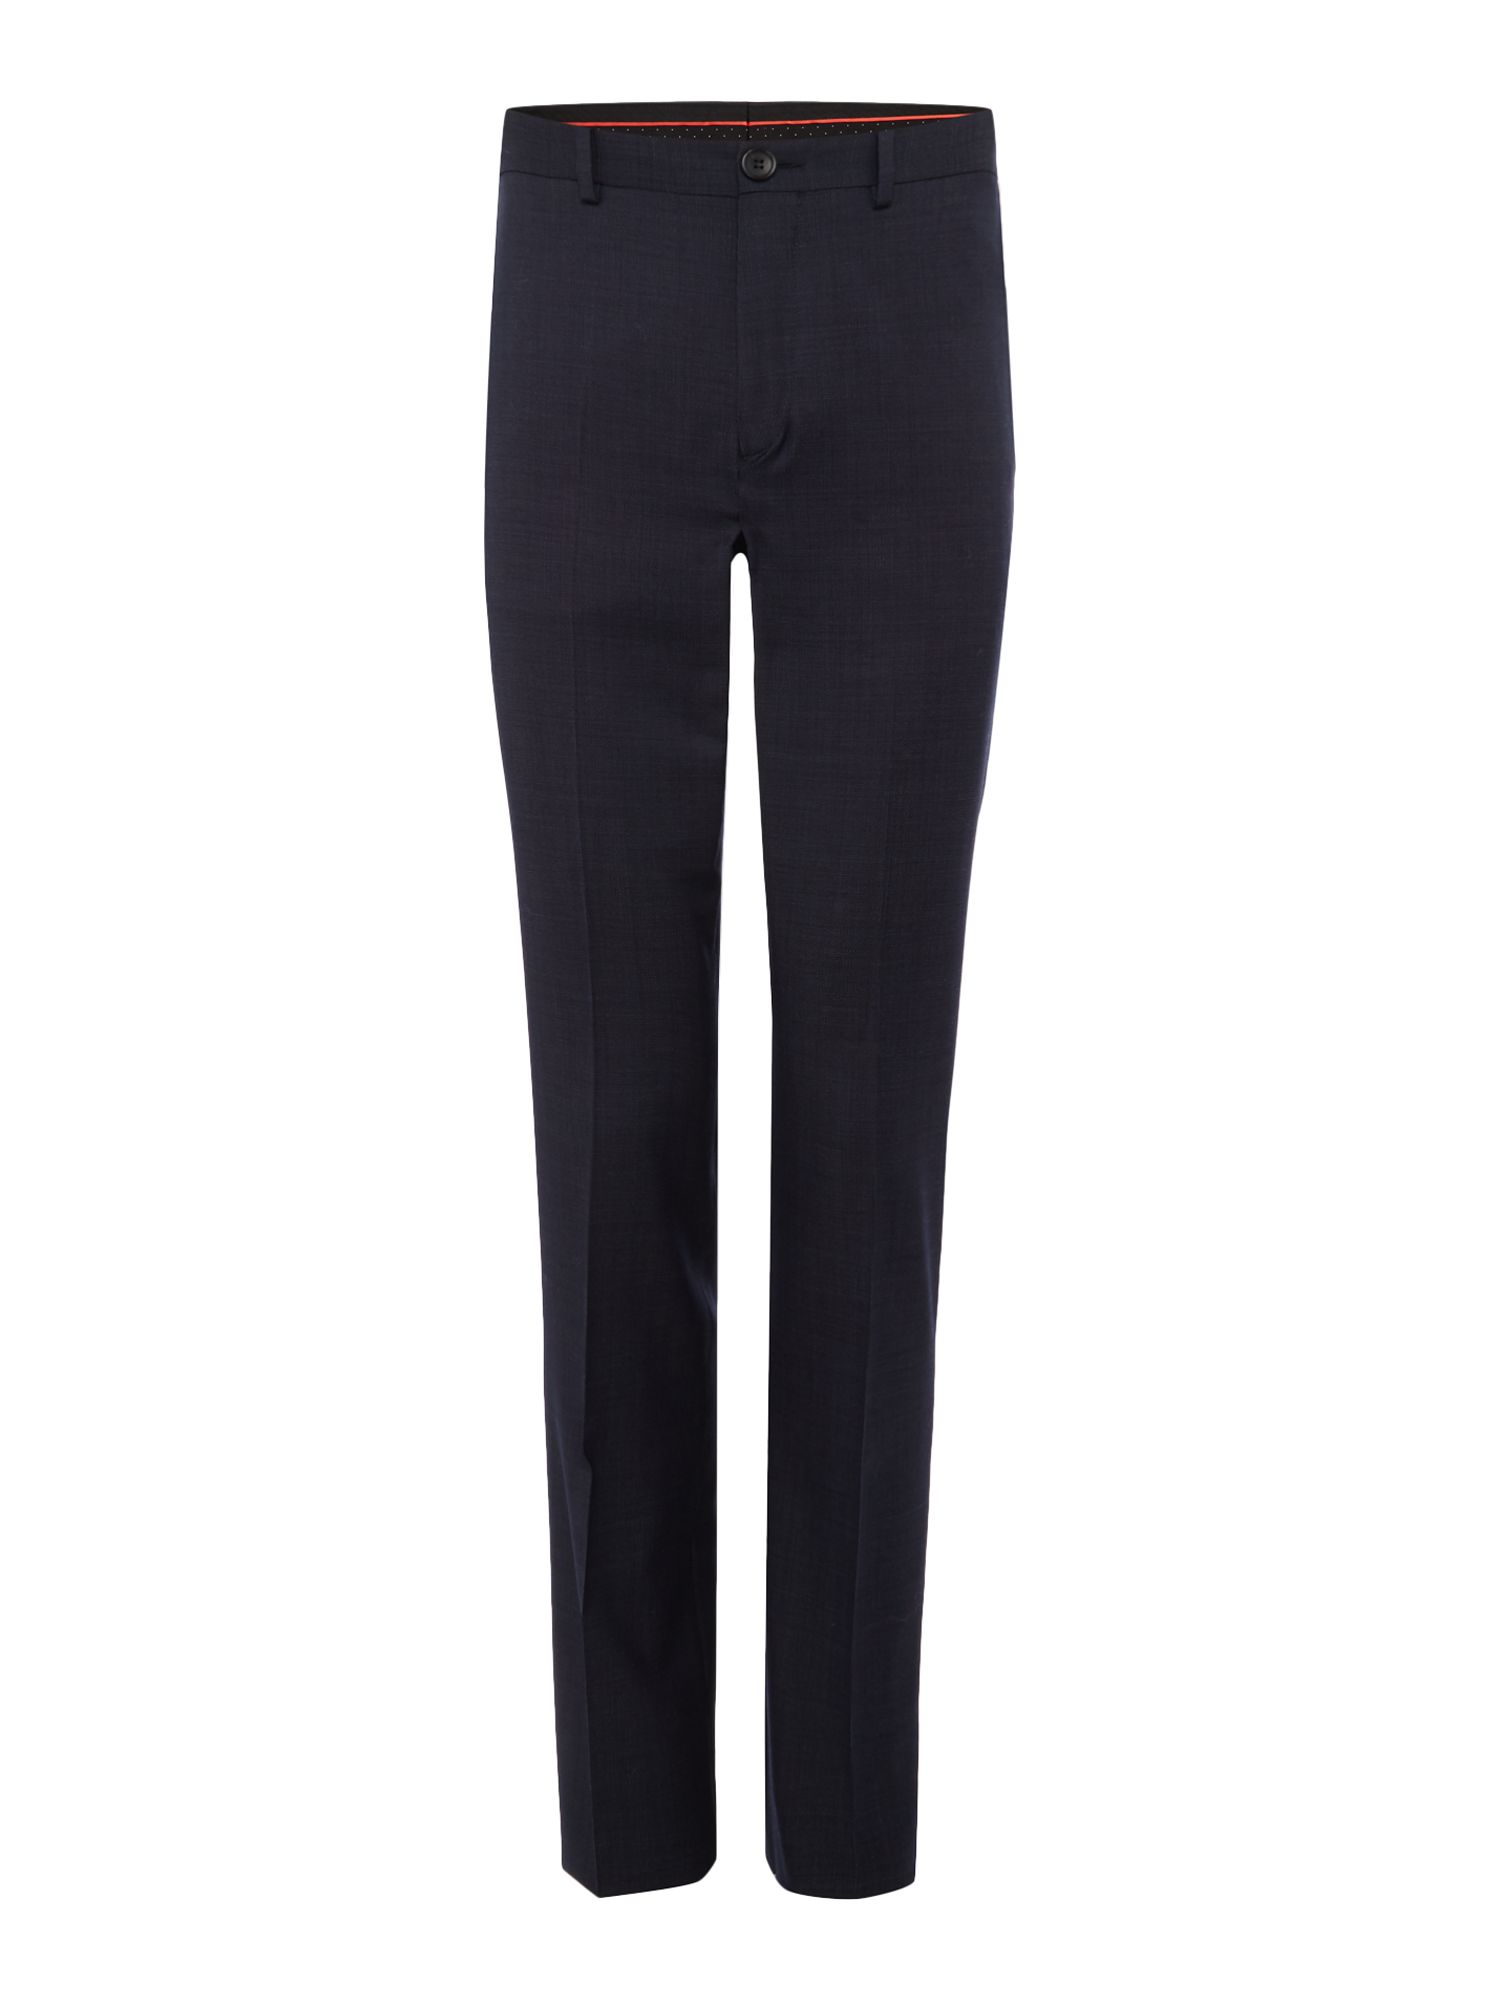 Men's PS By Paul Smith Pin dot Wool Suit Trousers, Blue